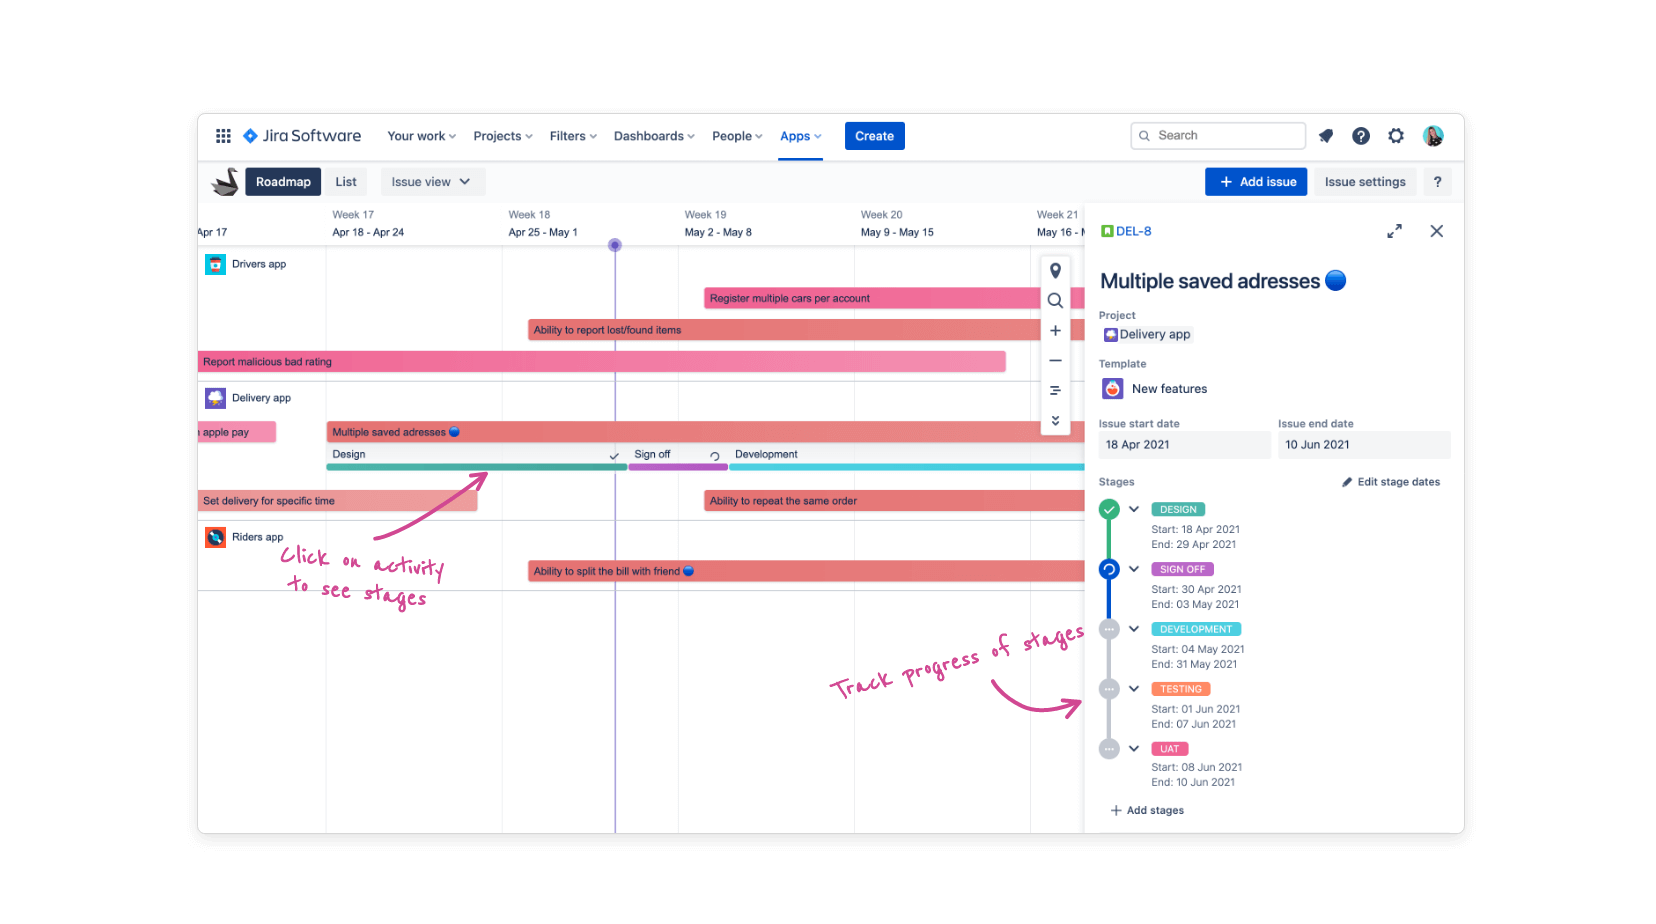 Swanly roadmap: Jira timeline to track stages